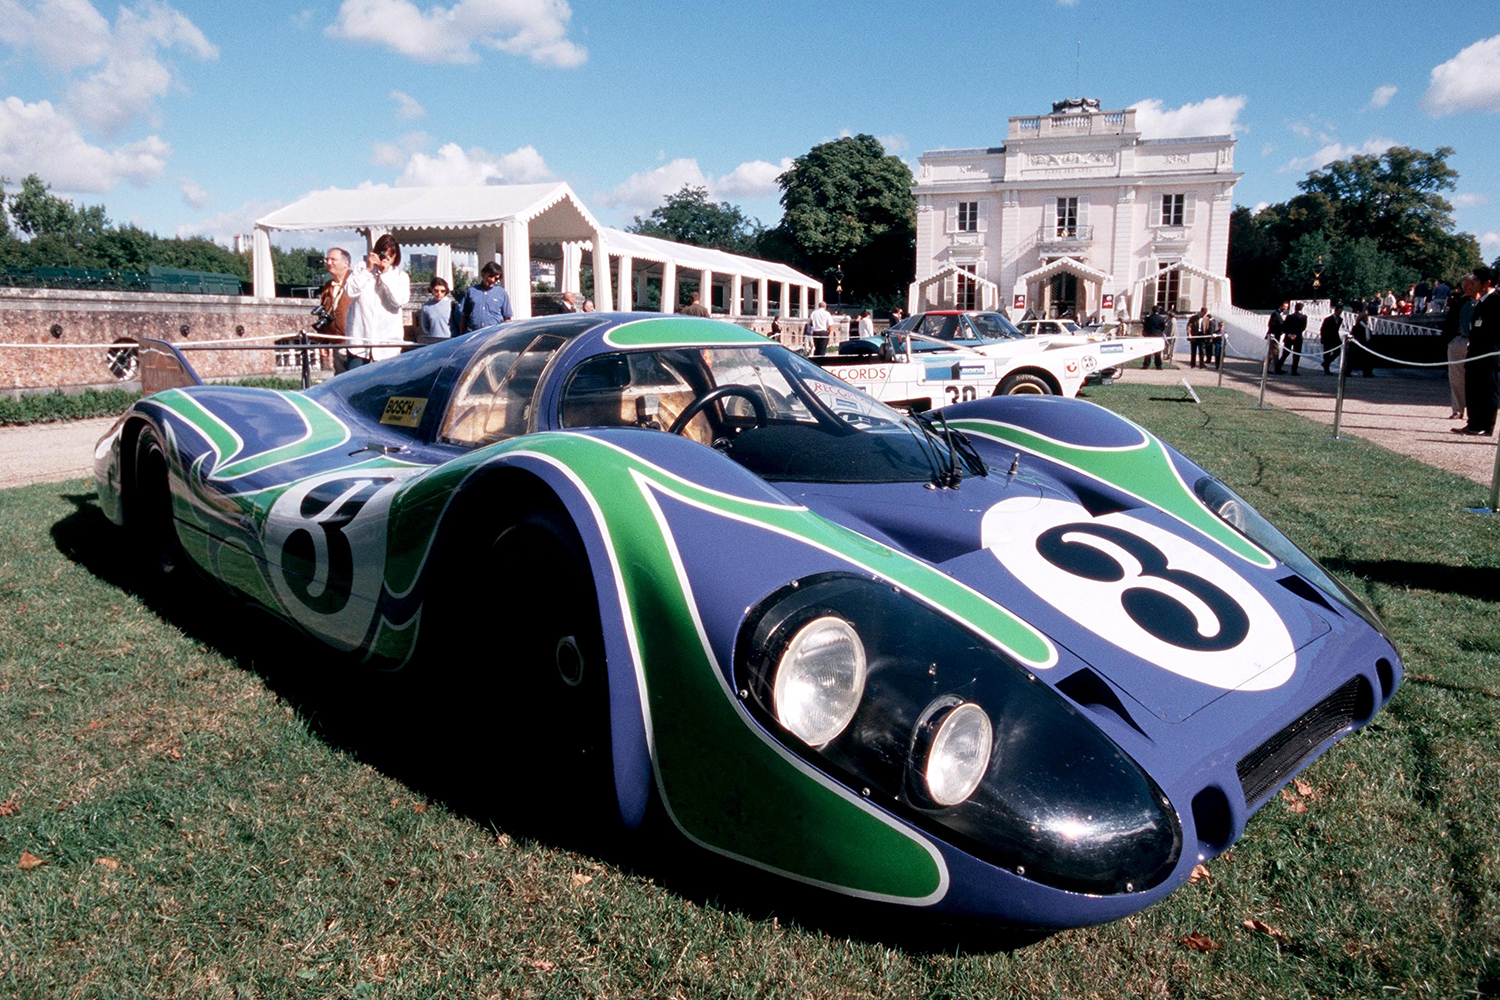 The Porsche 917 with the Hippie livery exhibited at Bagatelle park in France in 2001